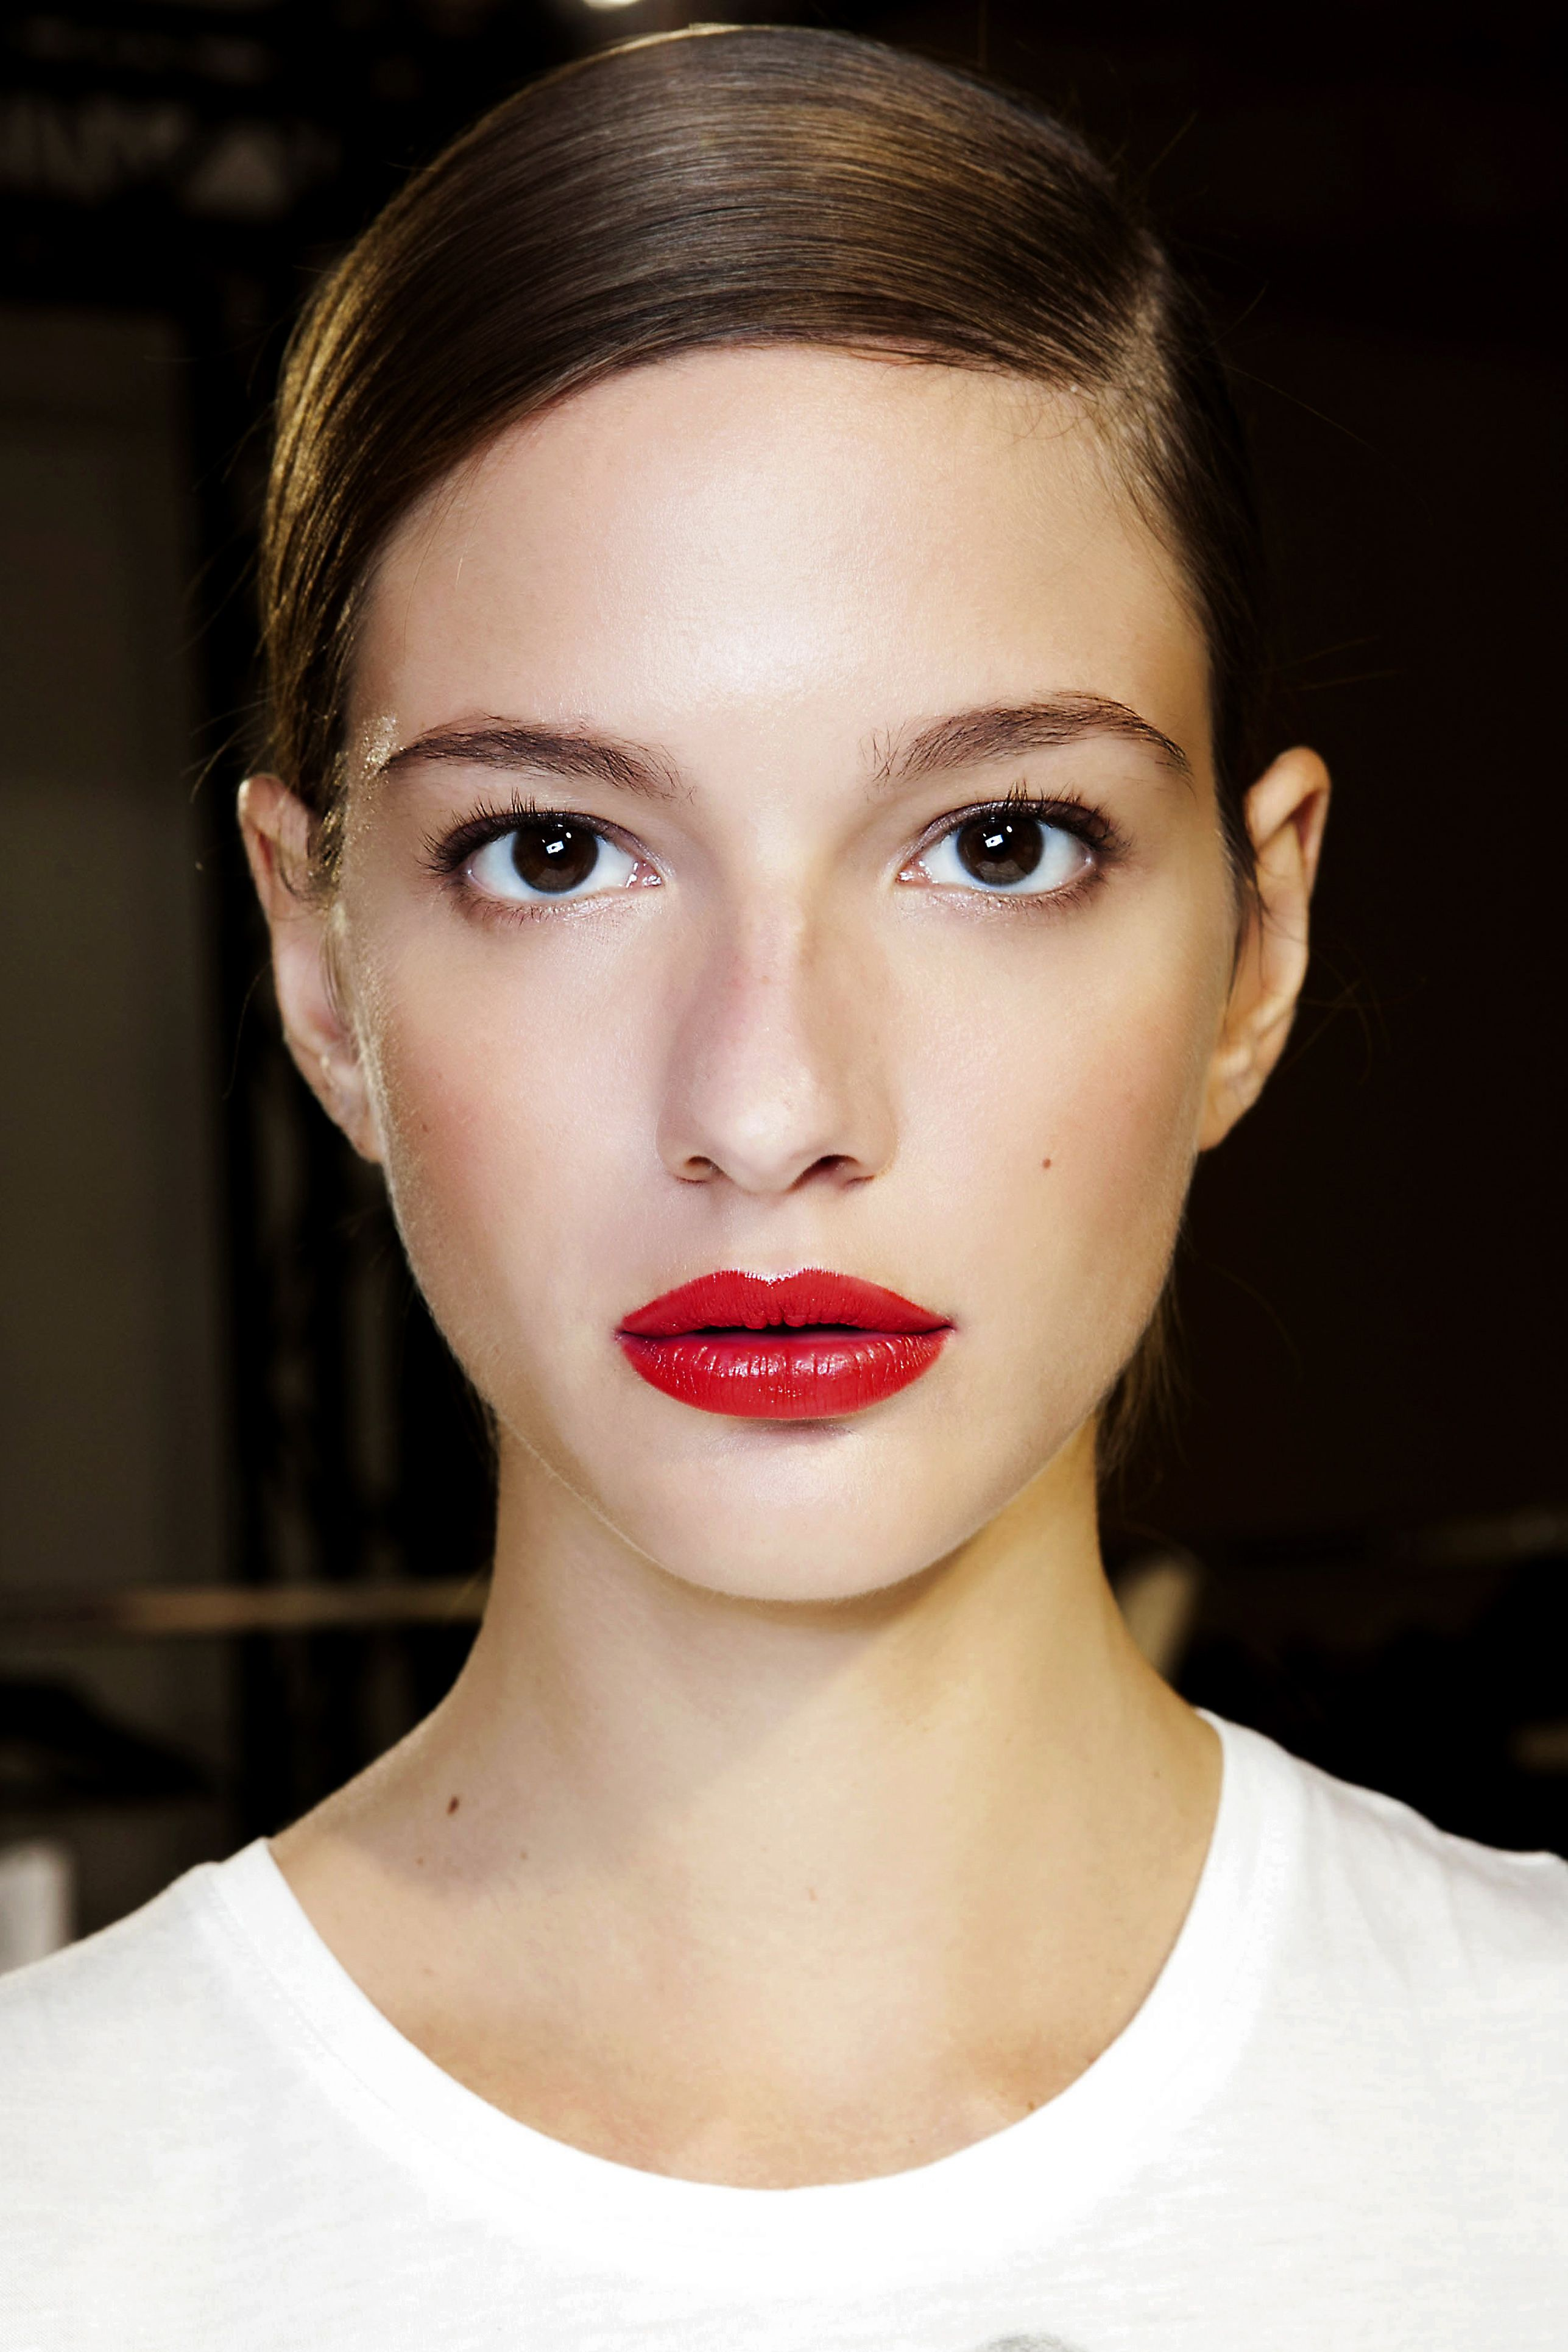 Pin by DIY Italy on RedLips  Pinterest  Lips Makeup and Clean face